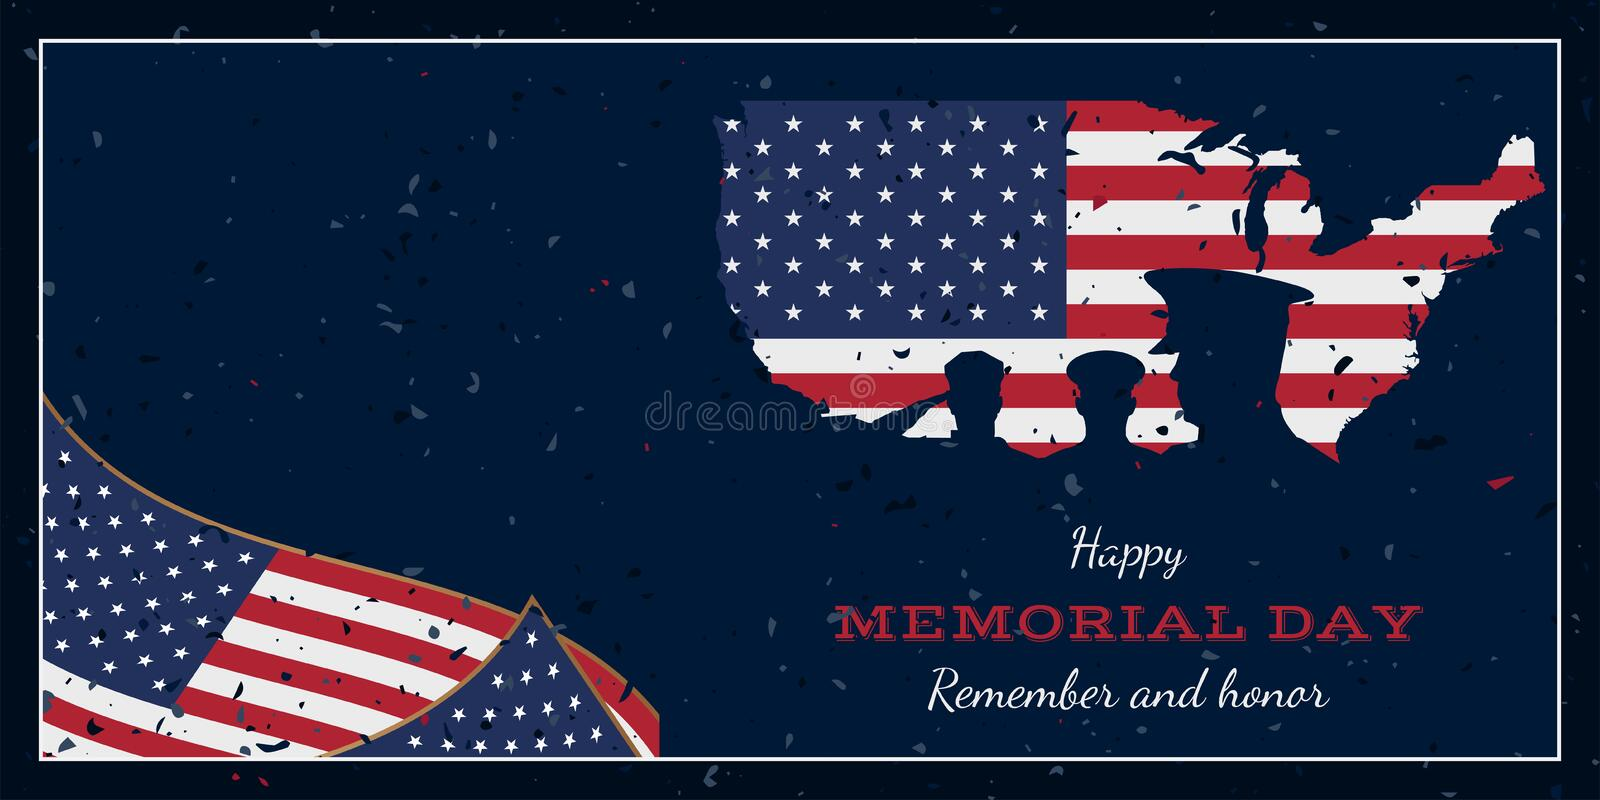 Happy memorial day. Vintage retro greeting card with flag and soldier with old-style texture. National American holiday event. Fla. T Vector illustration EPS10 stock illustration